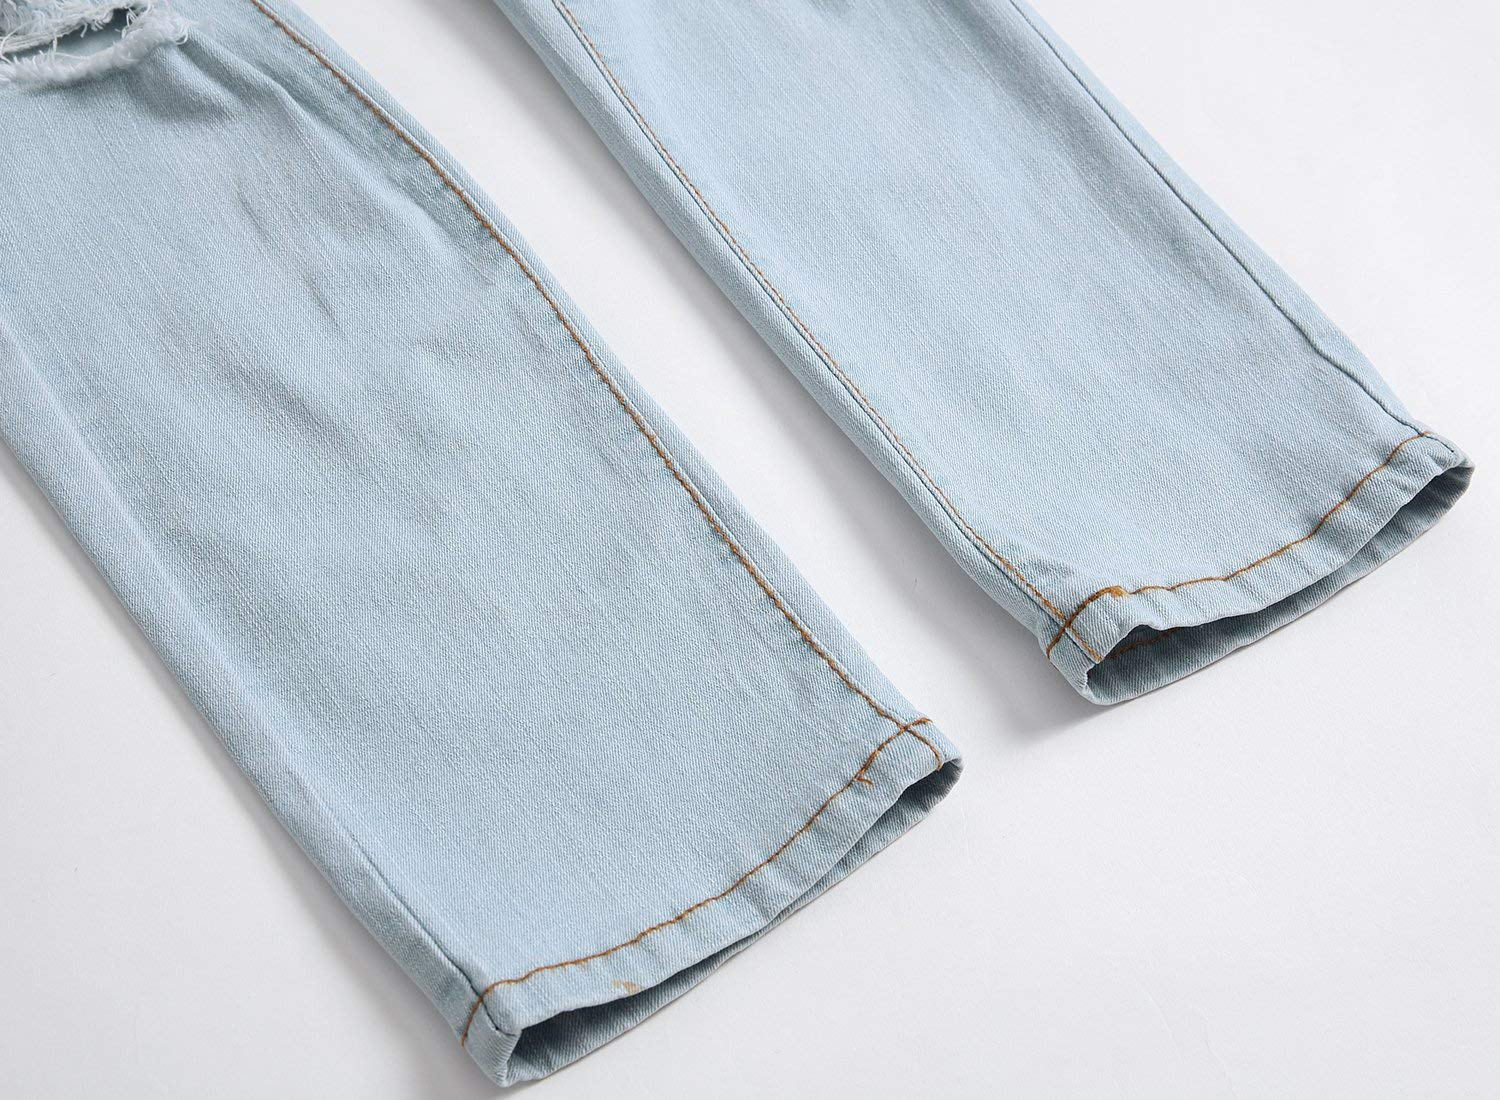 GARMOY Men's Fashion Light Blue Ripped Destroyed Flower Embroidered Skinny Fit Jeans Blue 32 by GARMOY (Image #7)